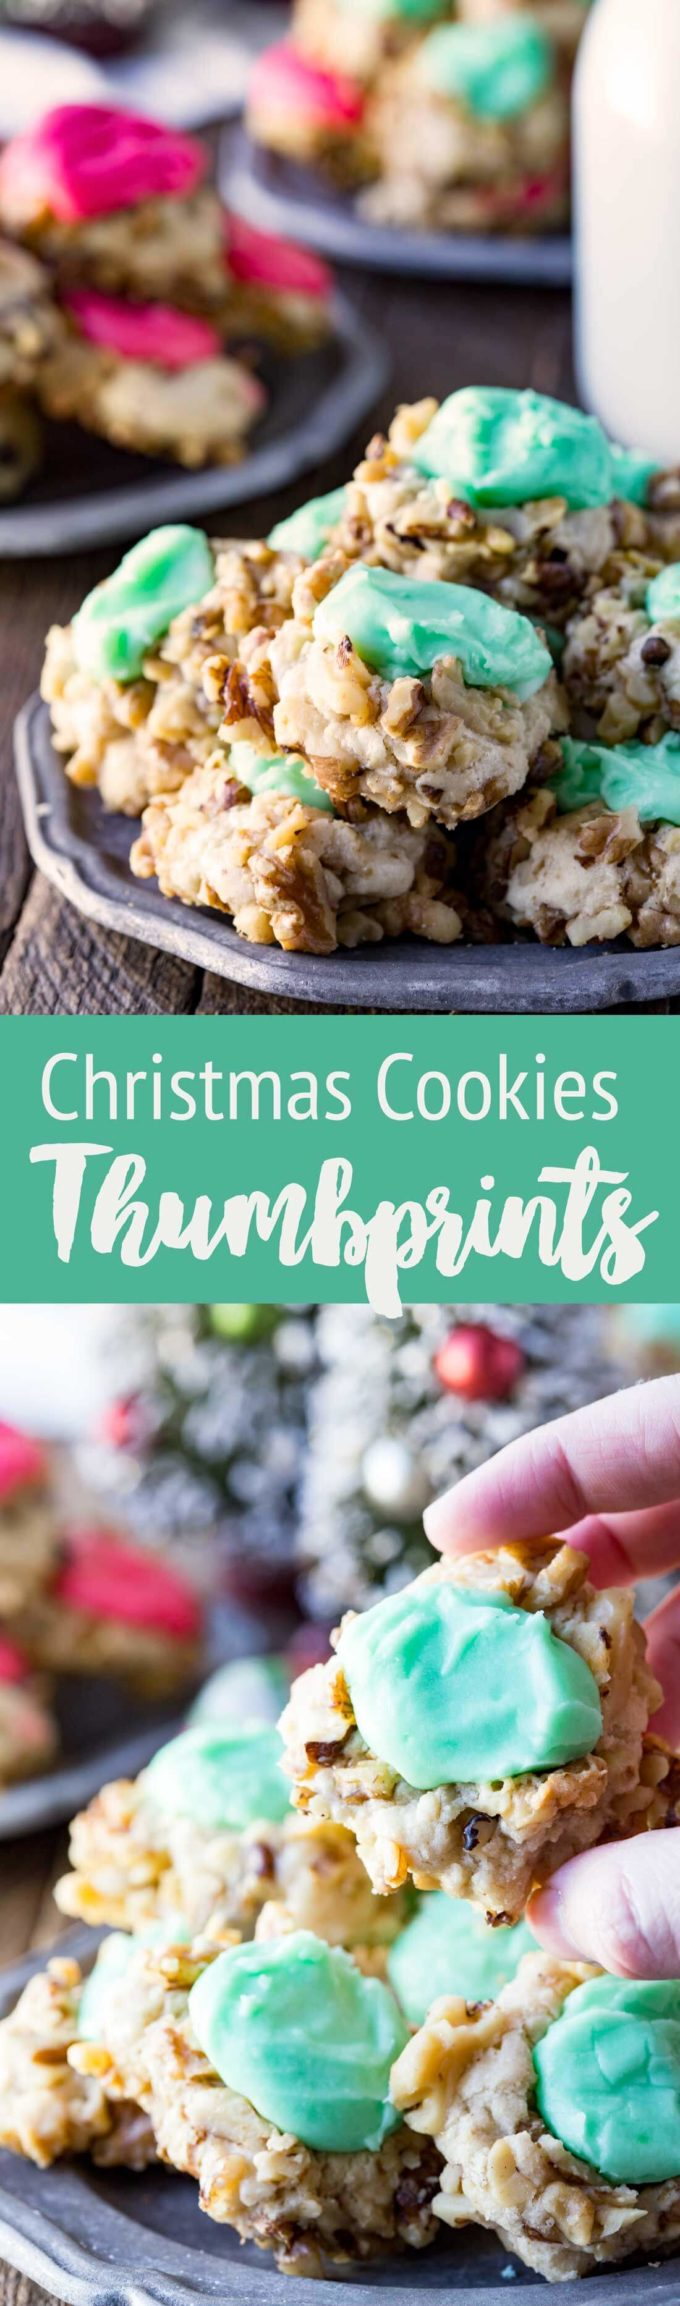 Christmas Cookies Thumbprint cookies are delicious, easy, and fun for holiday baking